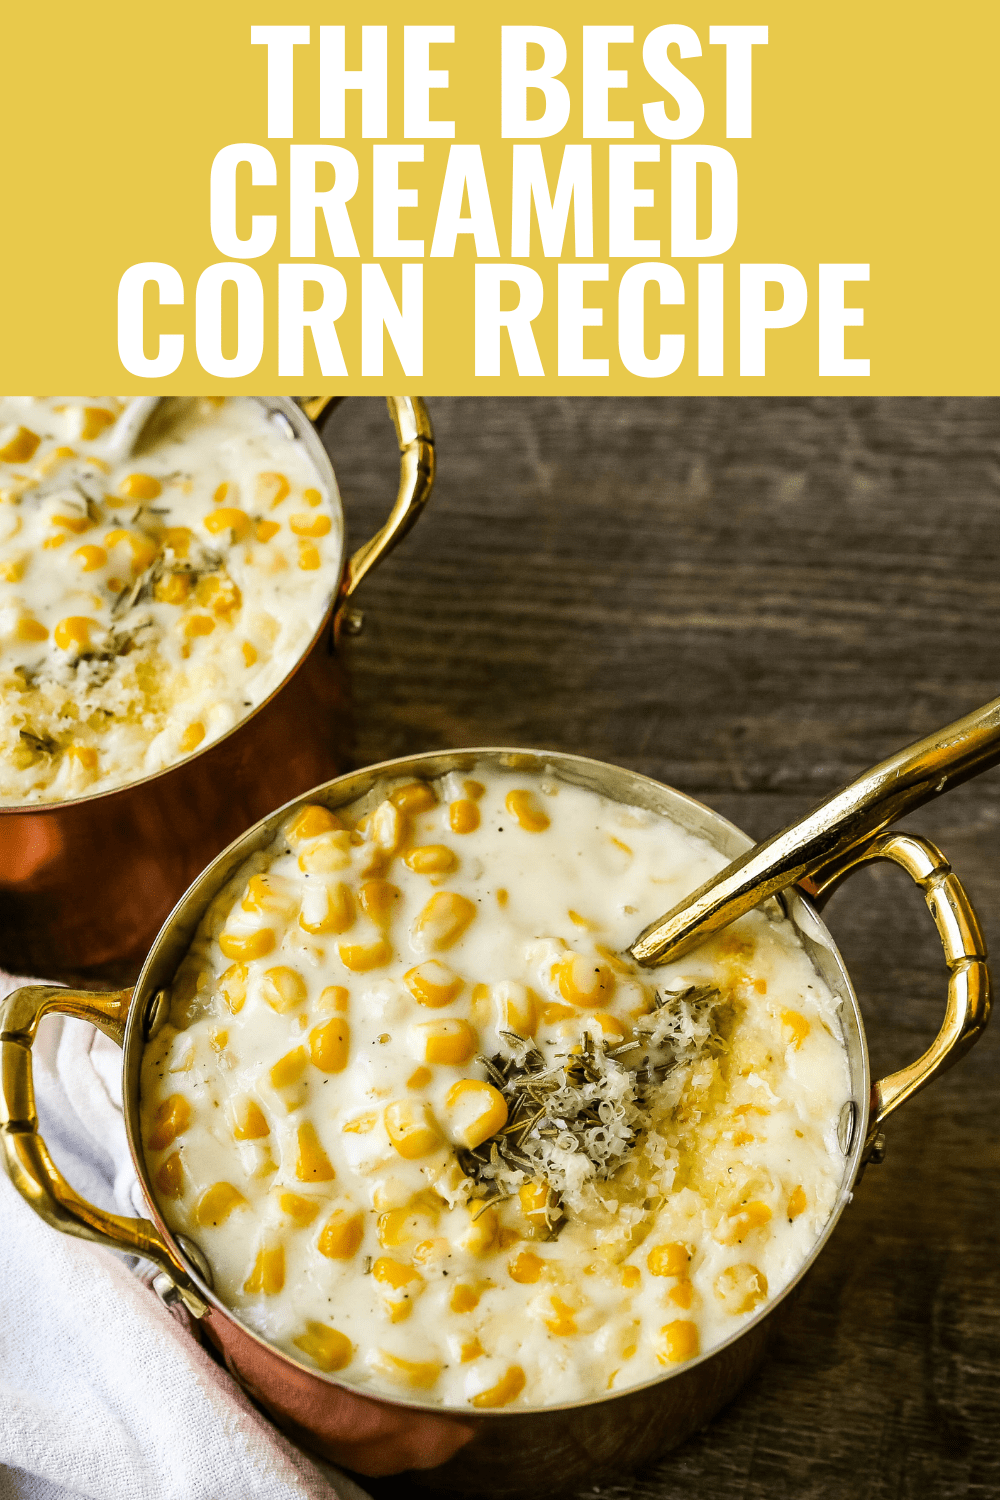 How to make the best creamed corn. A creamy corn recipe made with heavy cream, butter, corn, parmesan cheese, a touch of sugar and salt. A popular side dish or Thanksgiving side dish recipe. www.modernhoney.com #corn #creamedcorn #gullliverscorn #sidedish #thanksgiving